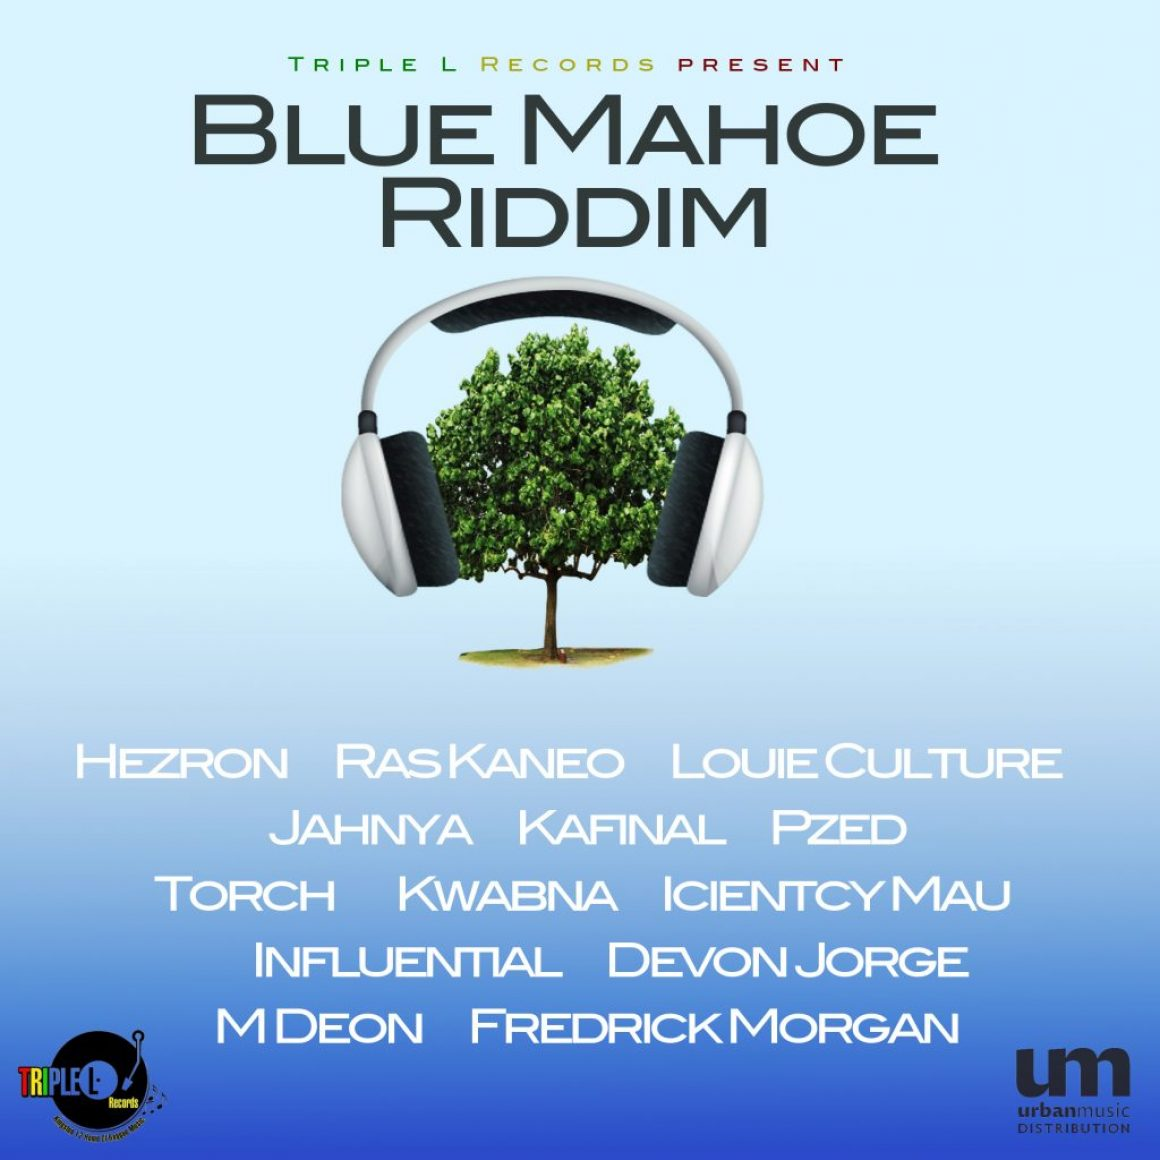 Blue Mahoe Riddim on heavy rotation in Jamaica and abroad